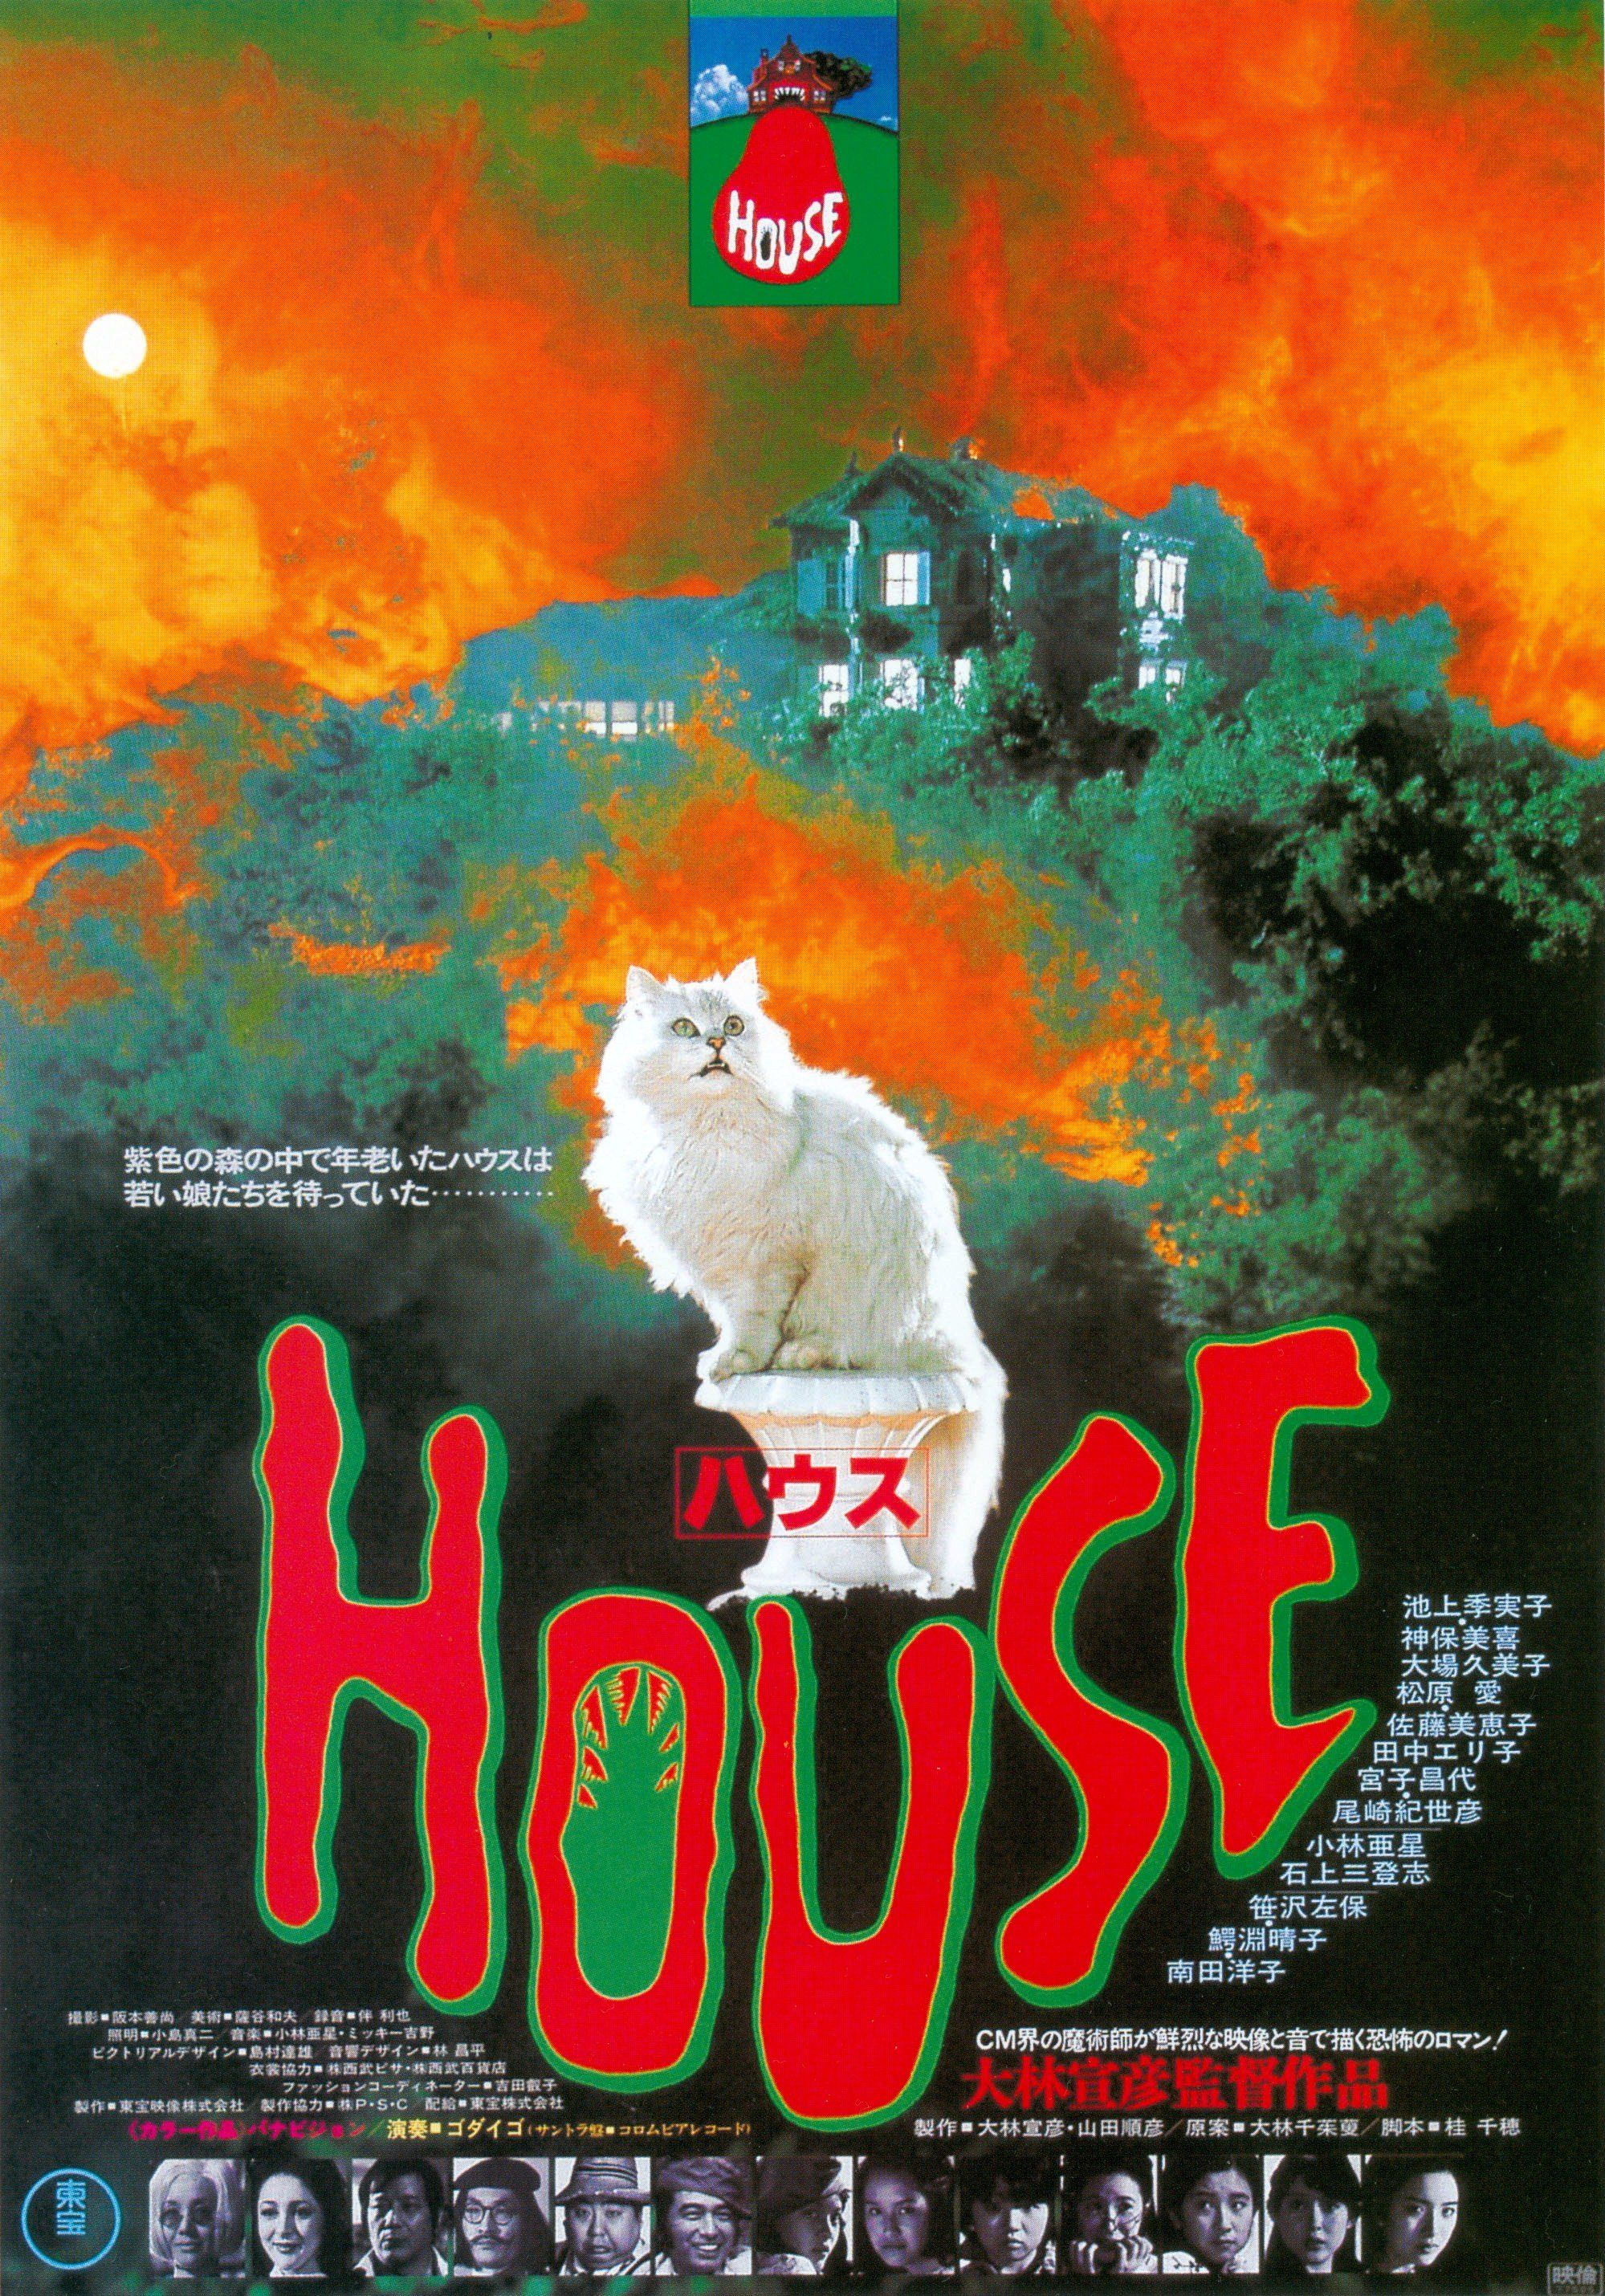 House   Japanese Poster 1977 HD Wallpaper From Gallsourcecom 1999x2860